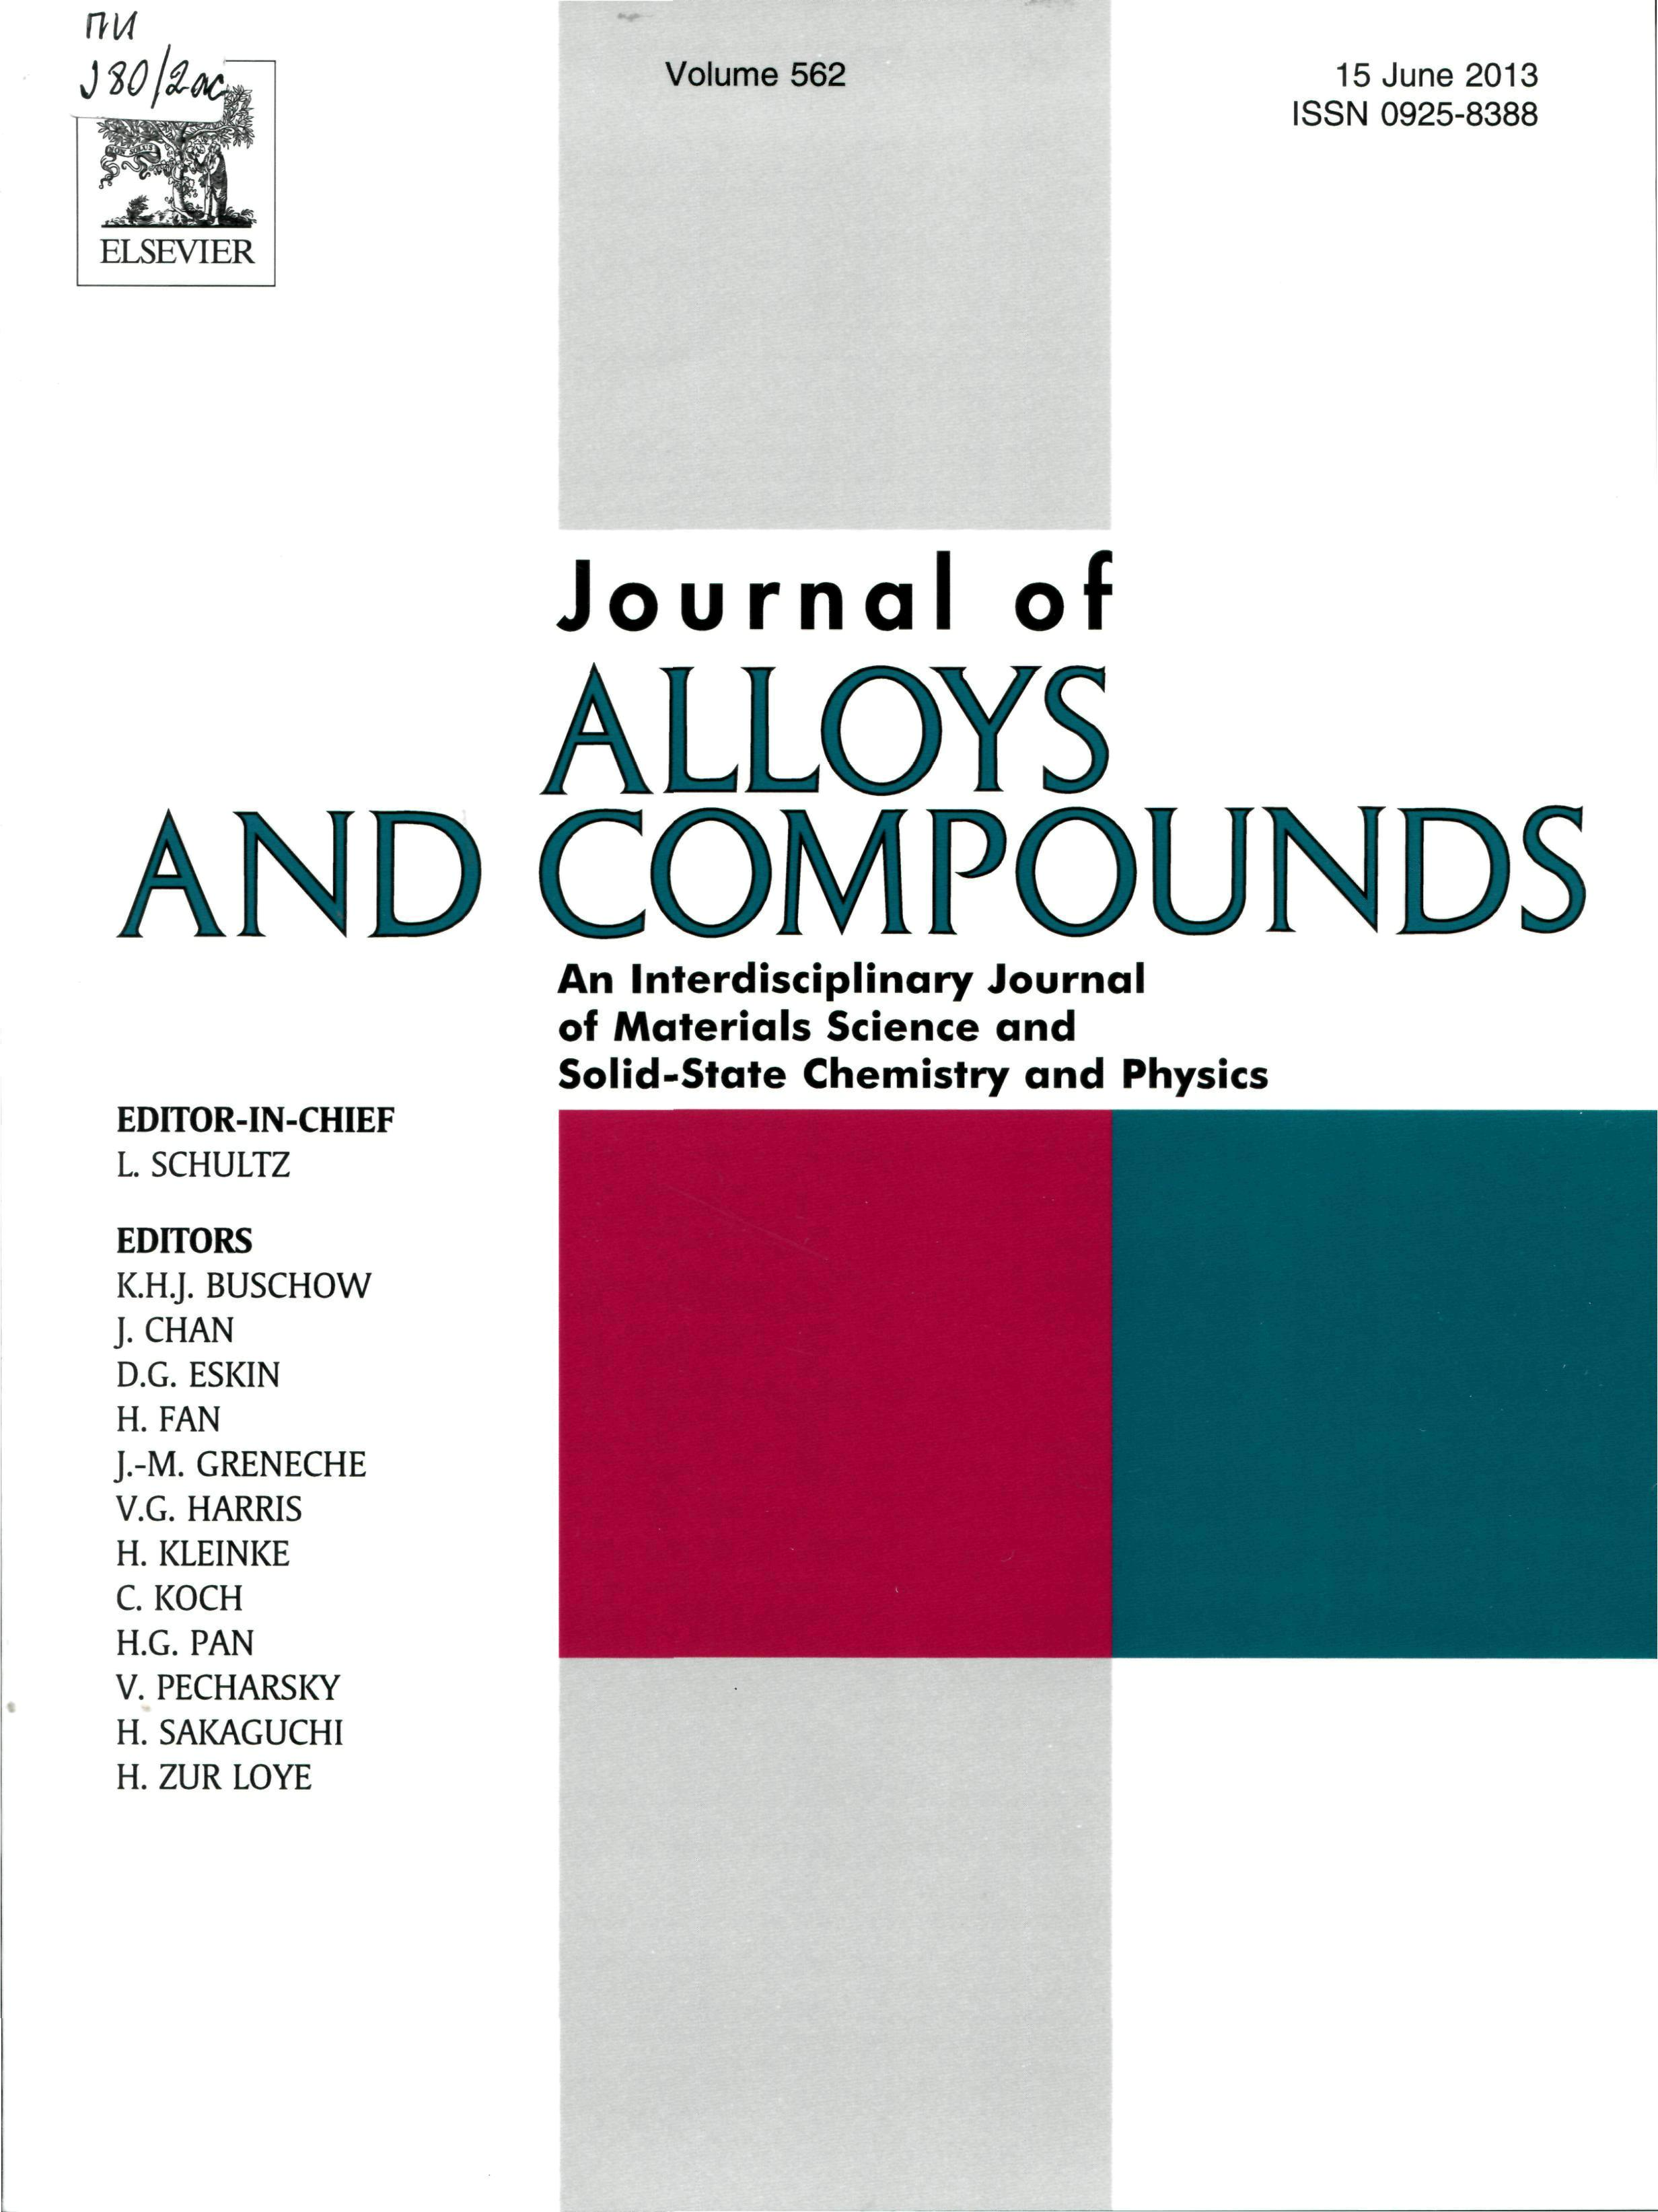 D. Babanlı, Z. Əliyev, S. İmaməliyeva, D. Tağıyevin yüksək impakt faktorlu (3,014)«Journal of Alloys and Compounds» jurnalında «An investigation of the Tl –Te – I system and structure of the Tl5Te2I» məqaləsi çap olunmuşdur